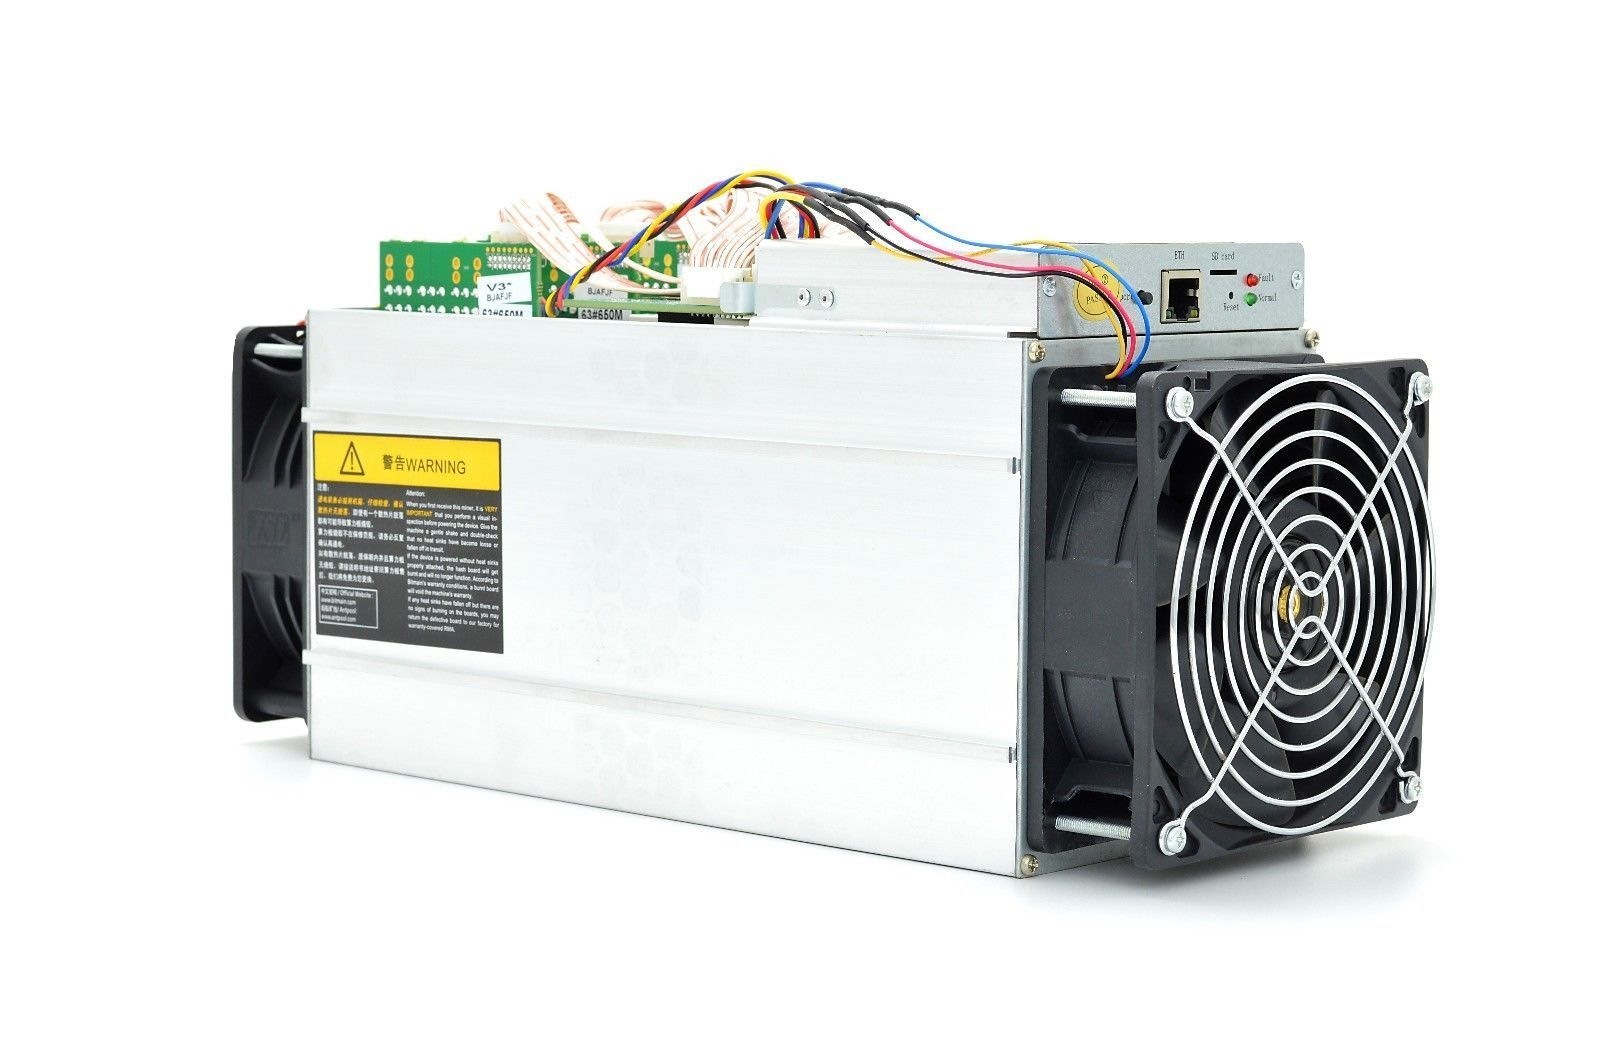 New Bitmain Antminer S9 14TH/s with APW+3 Power Supply In Stock